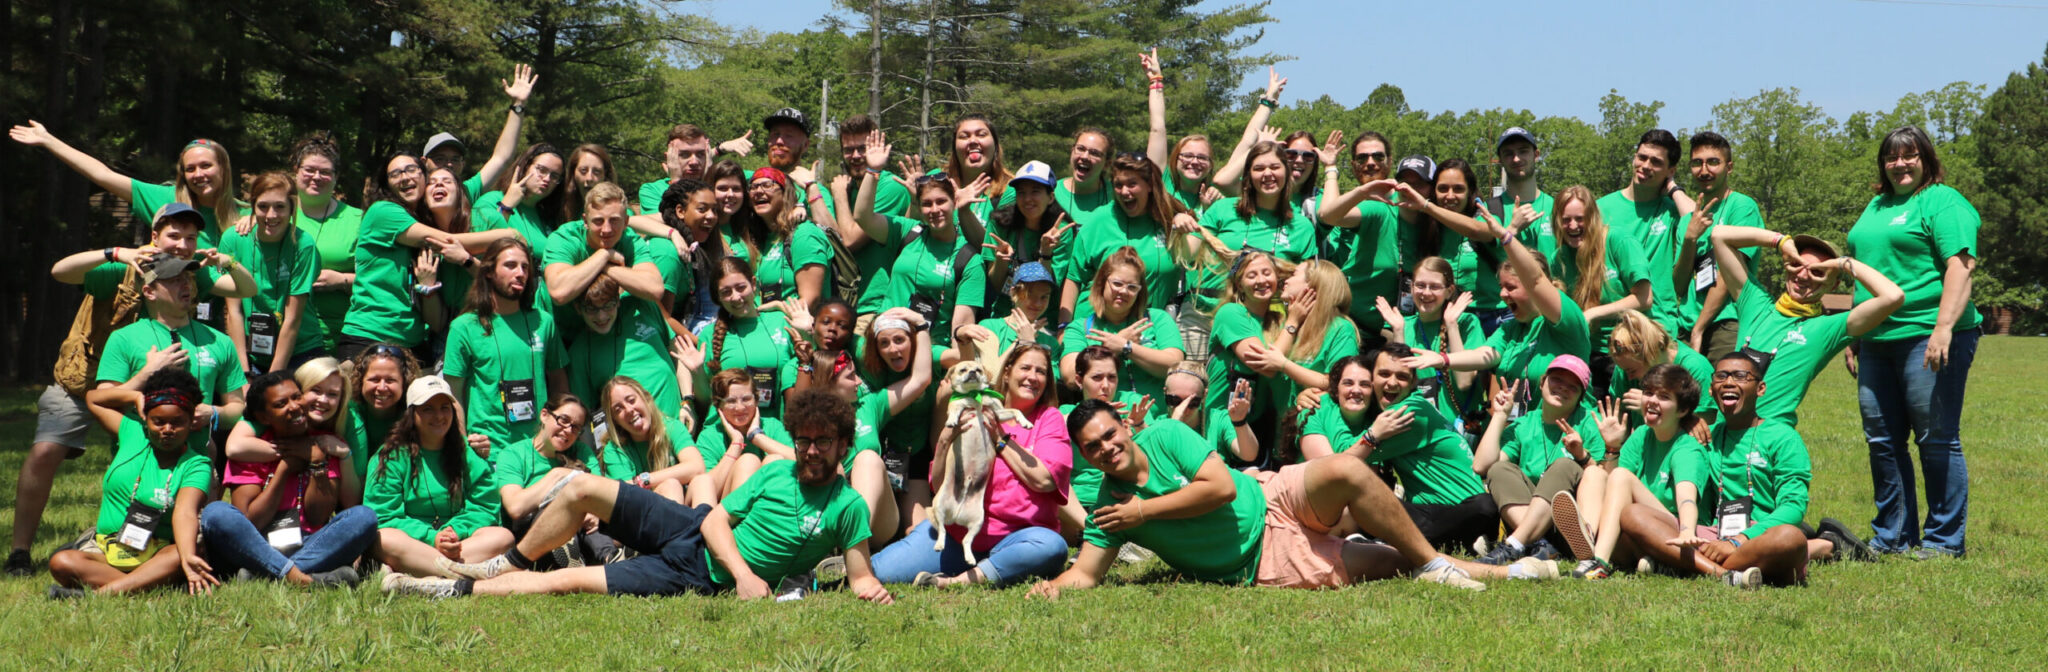 Join Our Team - Cub Creek Science Camp